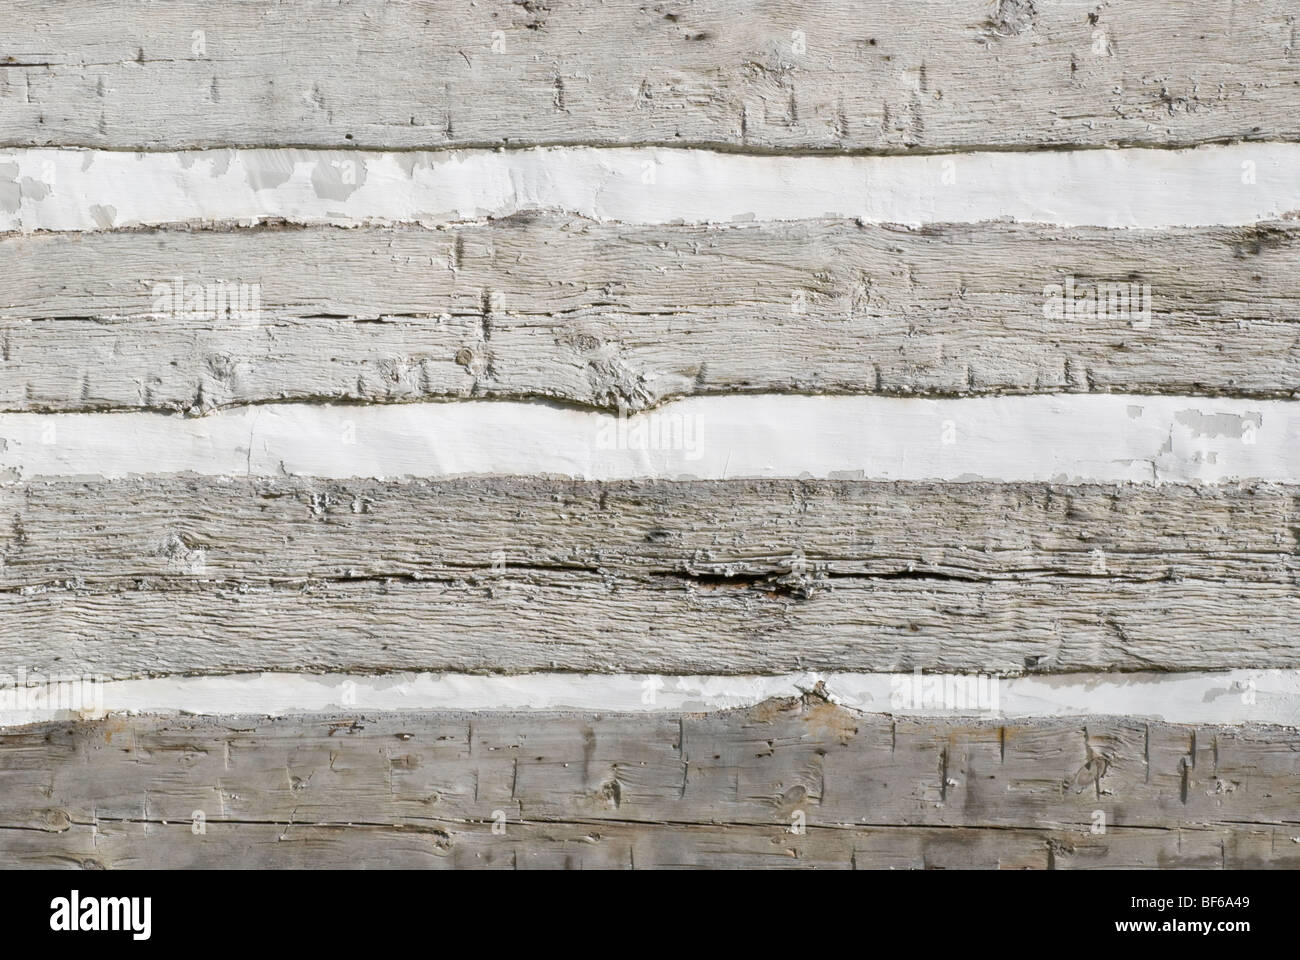 Stock Photo Of Log Cabin Exterior Wall Showing Siding Made